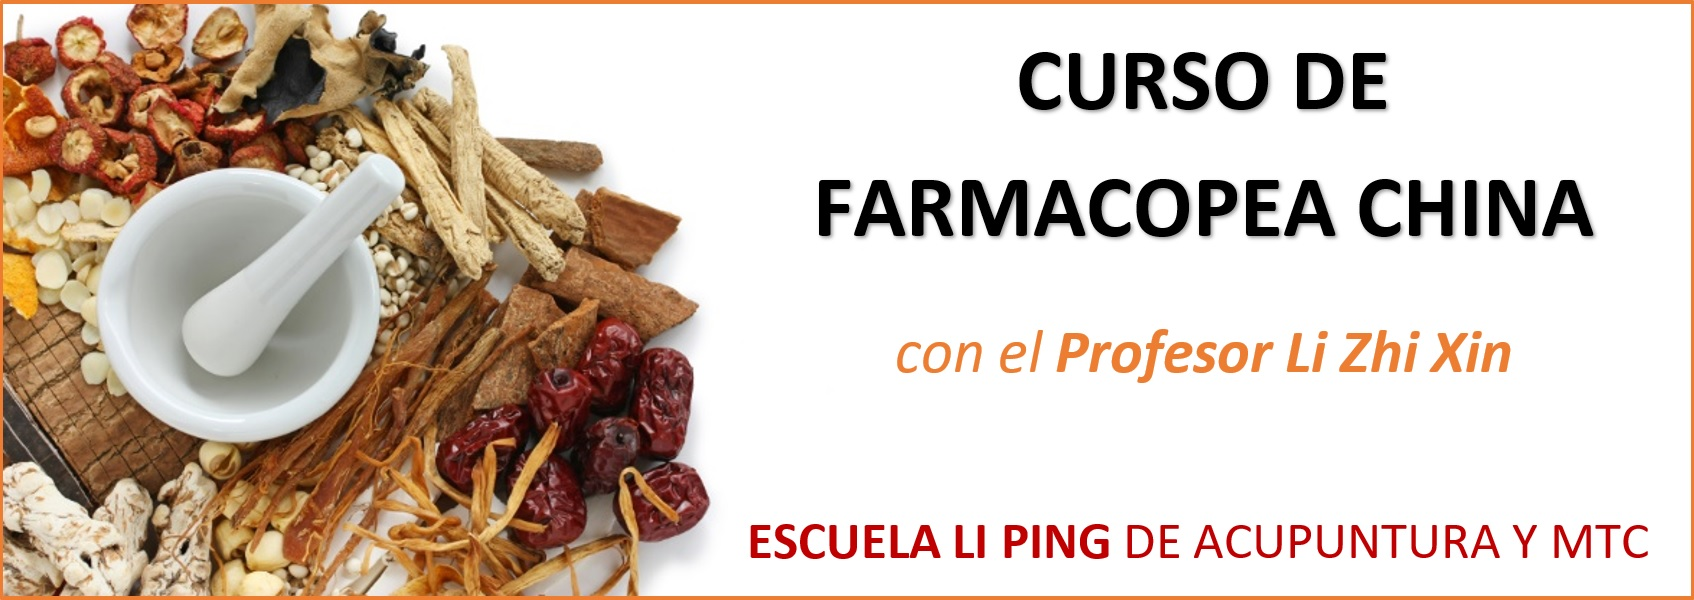 Curso de Farmacopea China